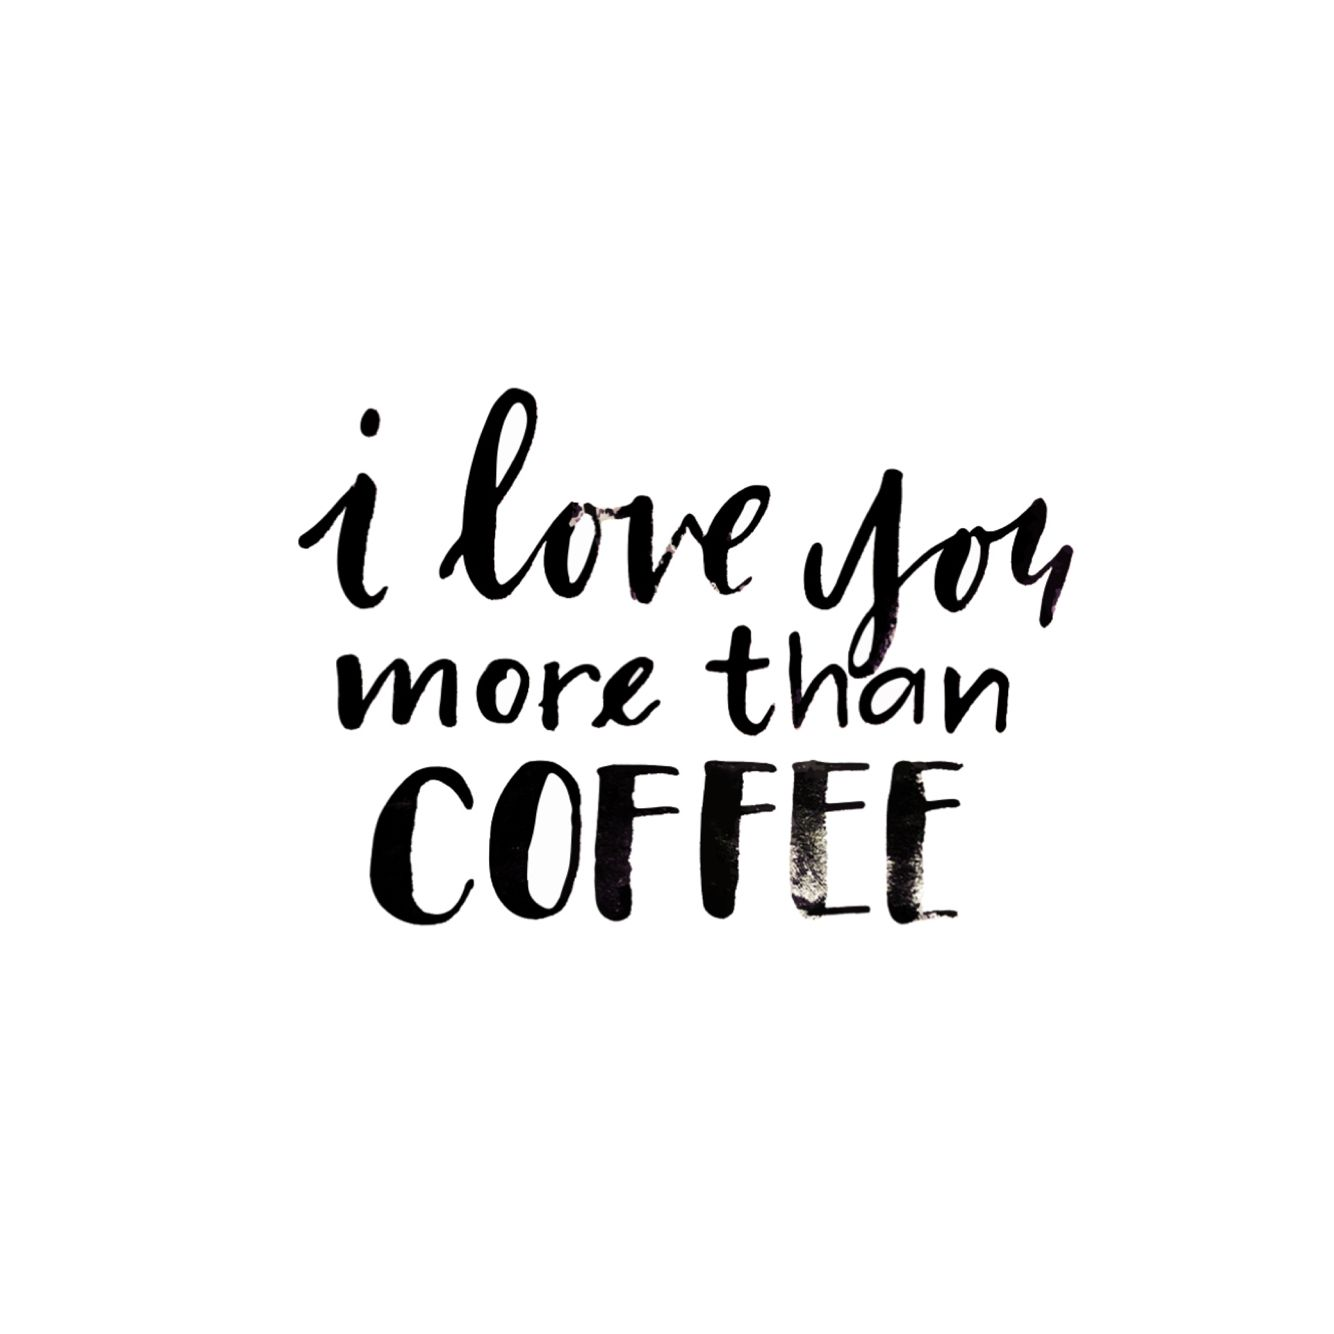 I Love You More Than Coffee Typography Lettering